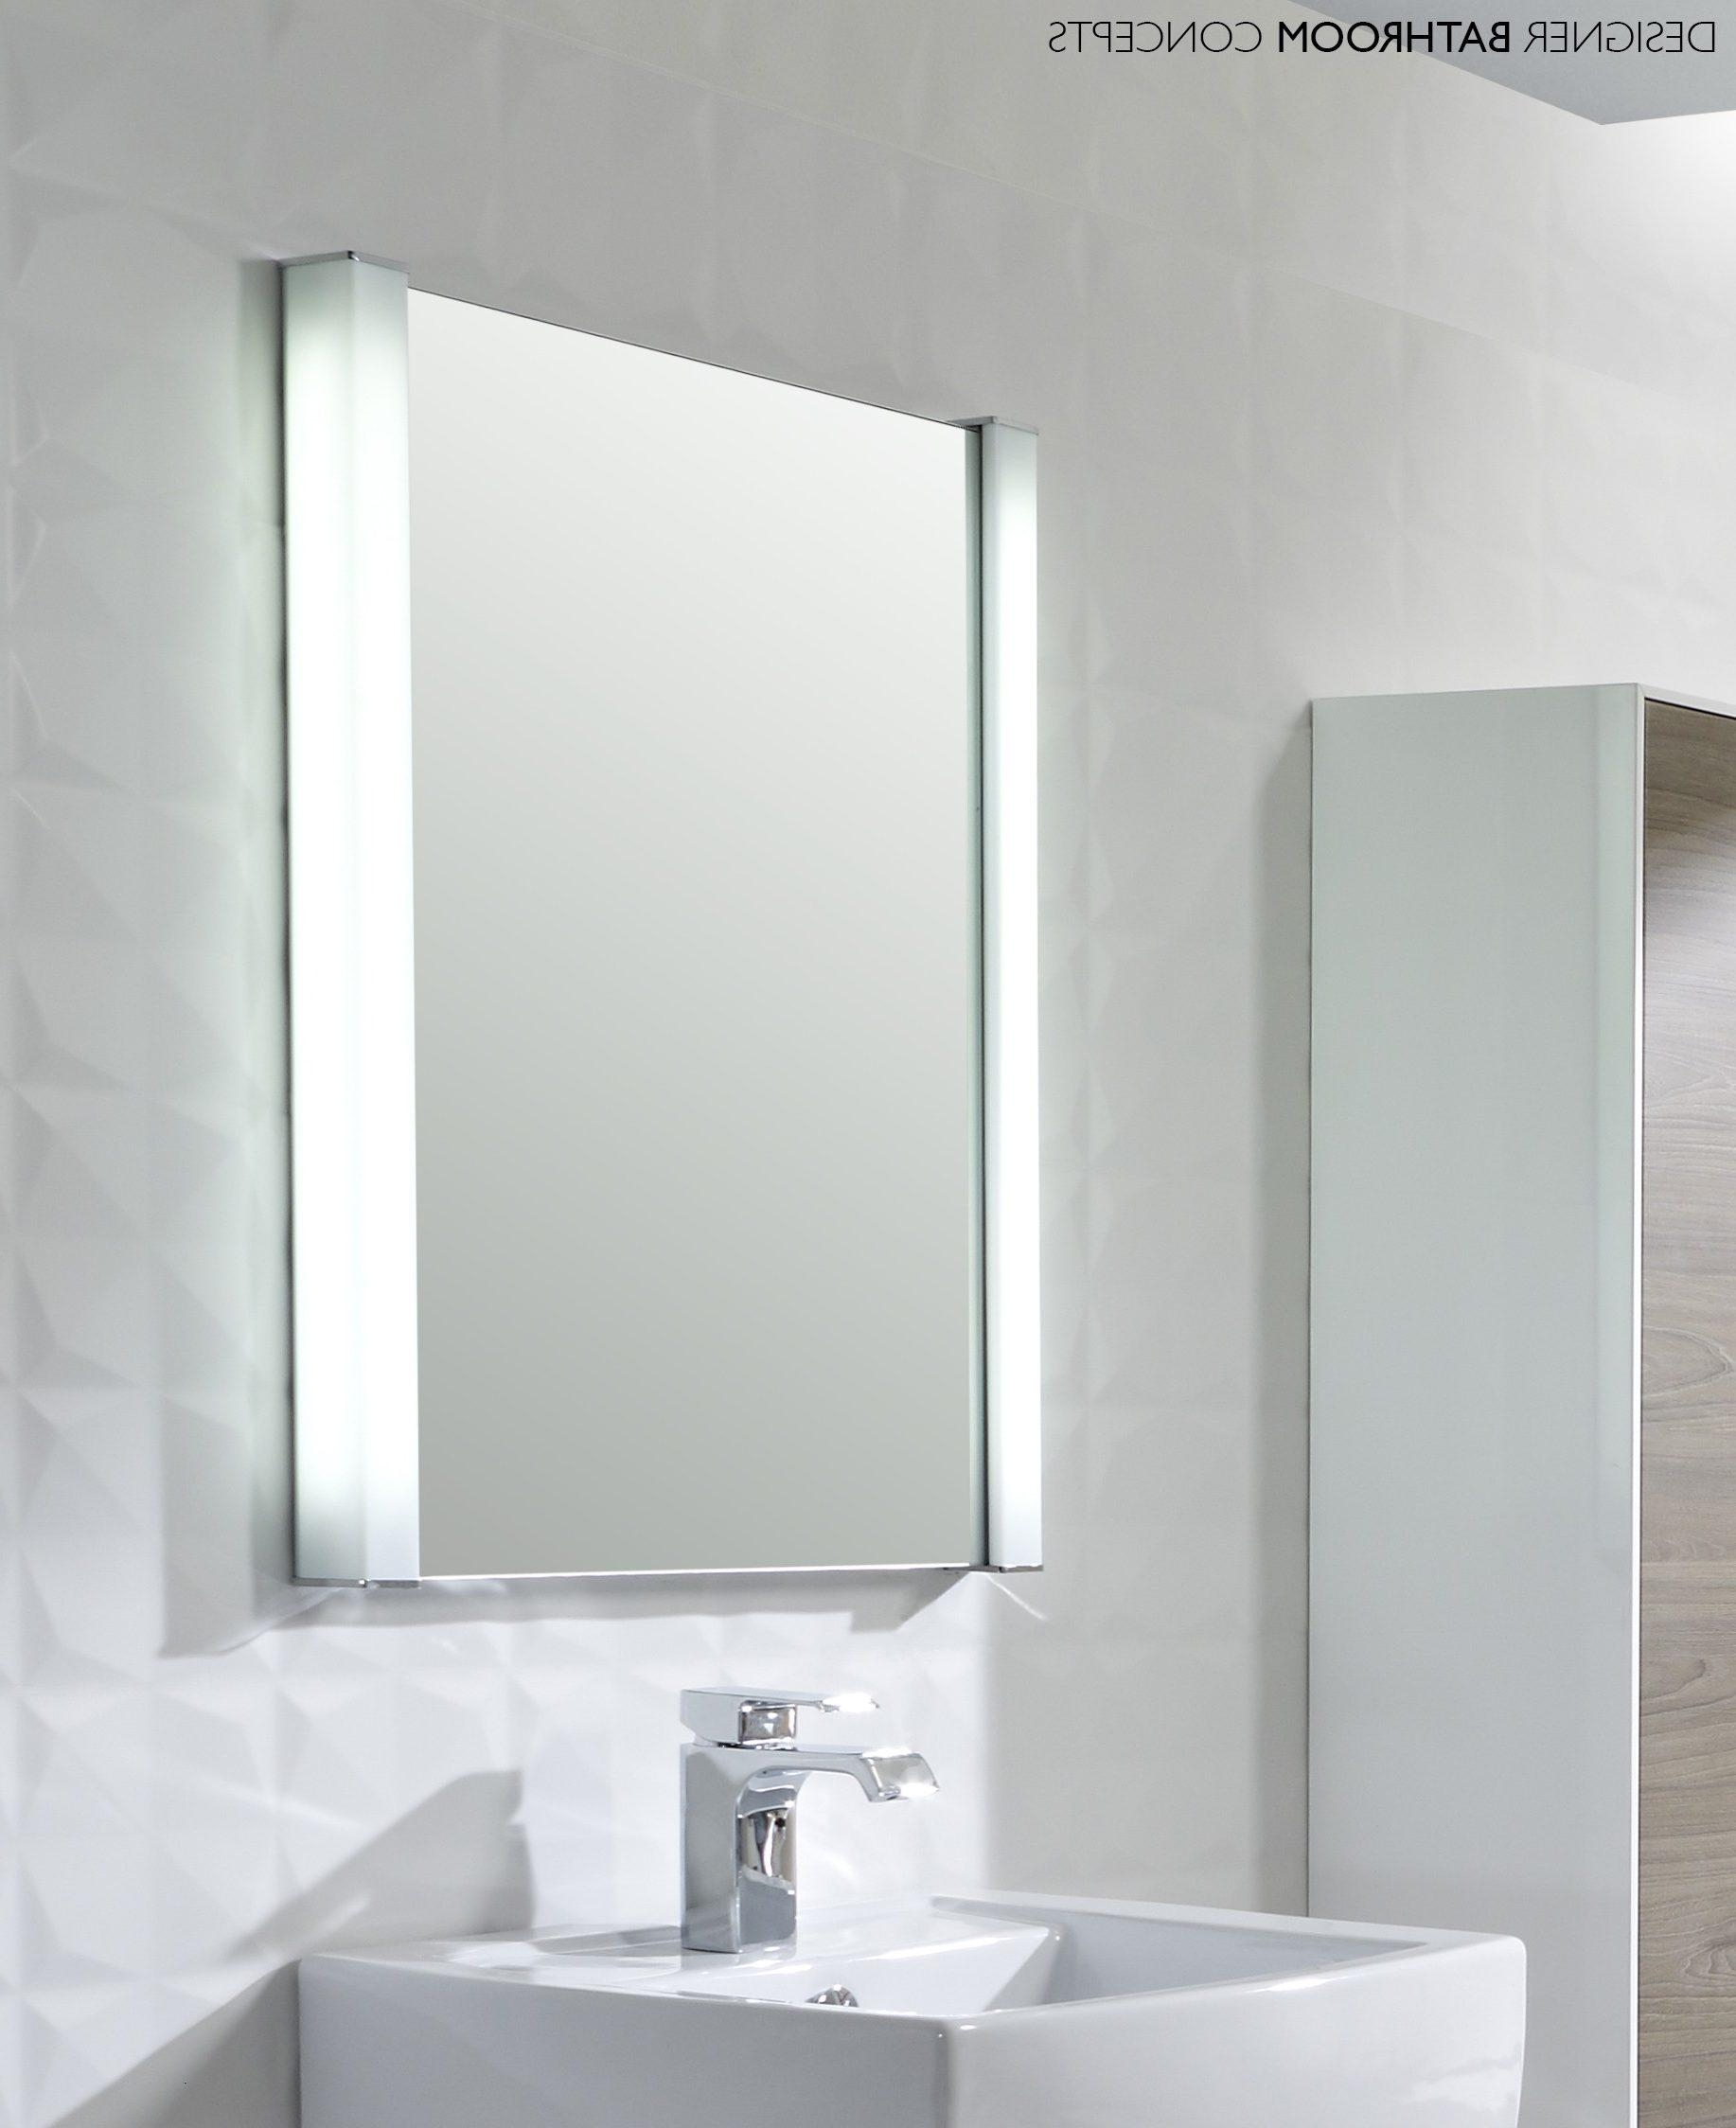 Illuminated Dressing Table Bathroom Mirrors Wall Mounted White With Free Standing Table Mirror (Image 8 of 20)